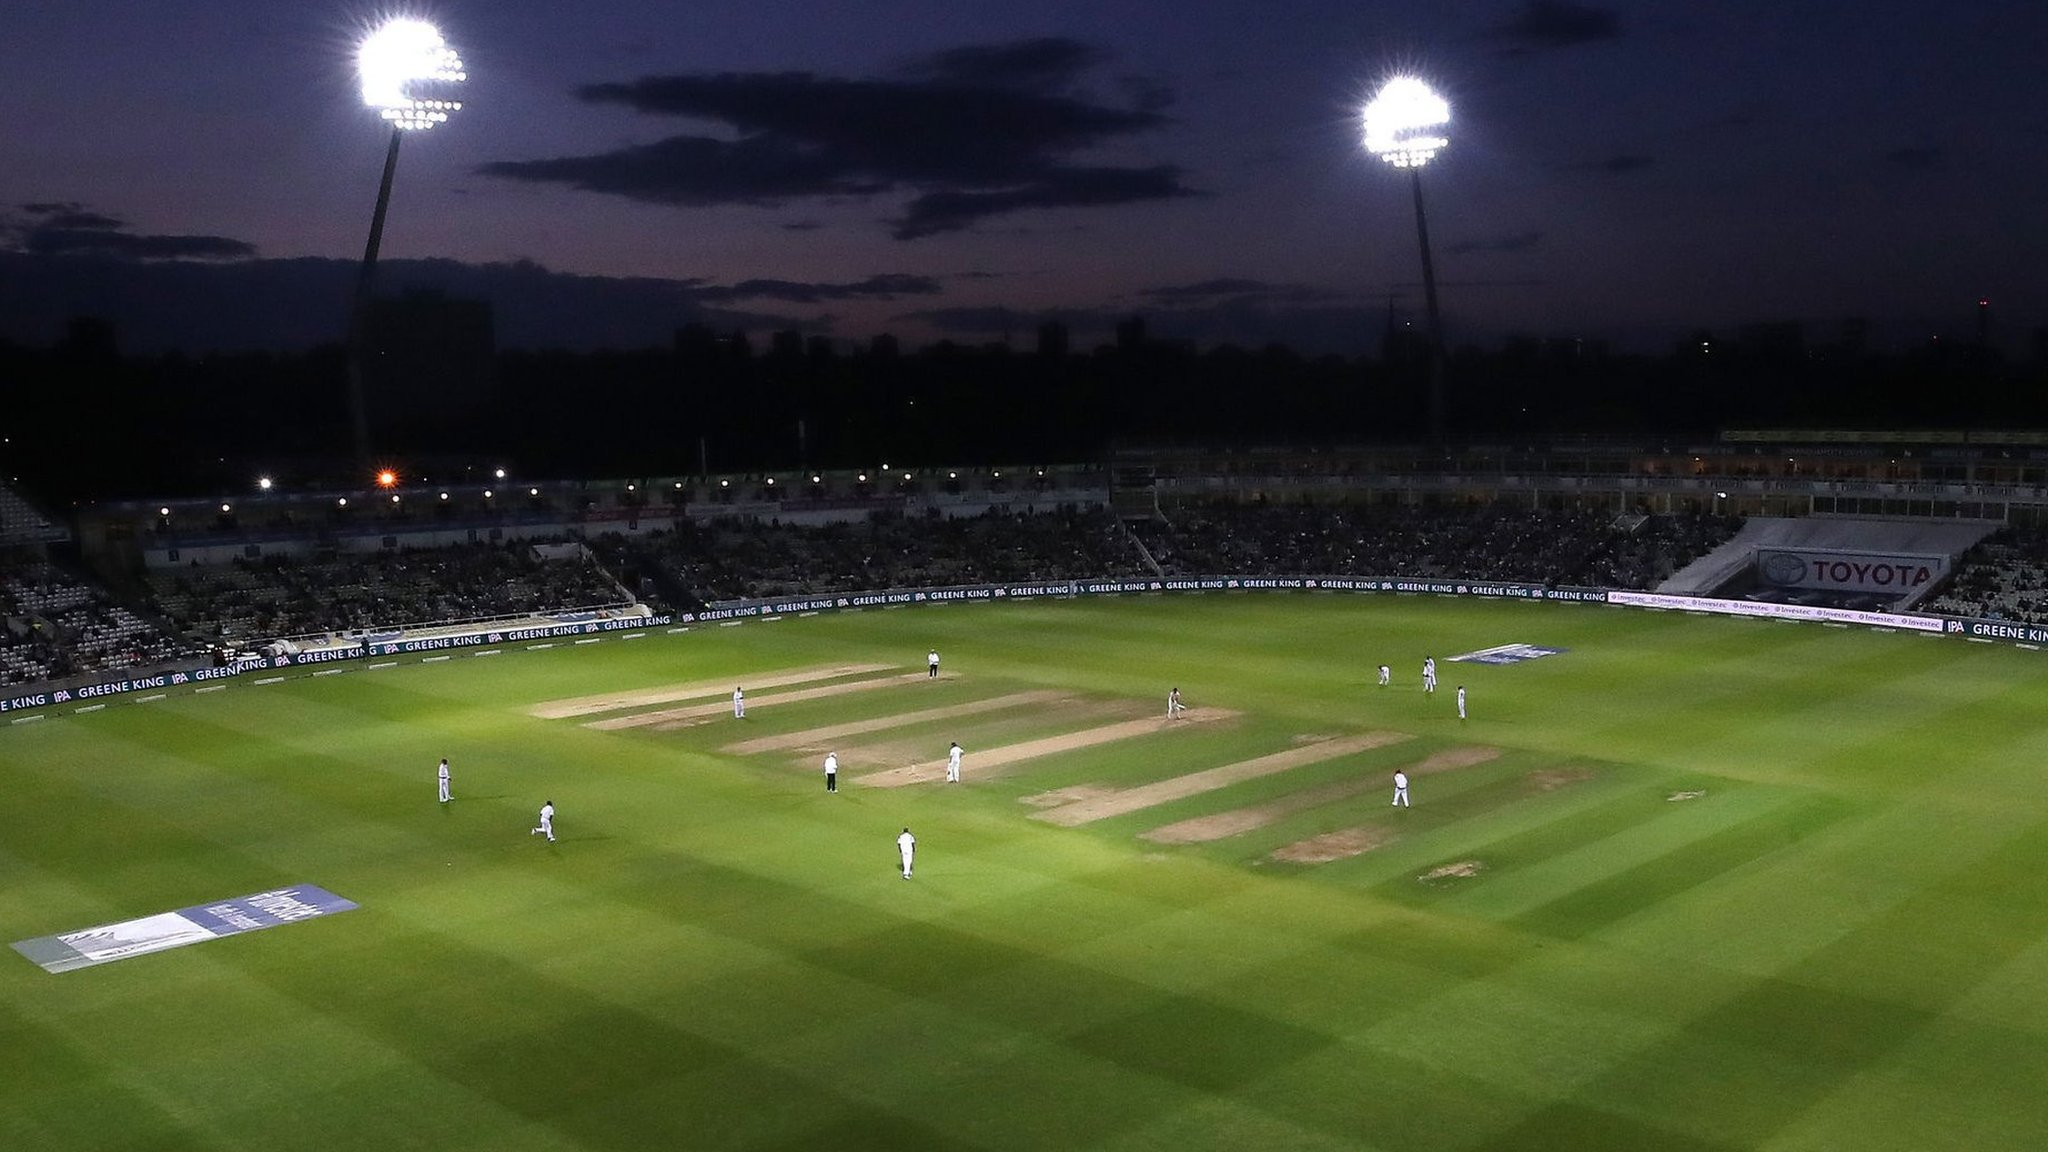 Spot the difference - pink ball & floodlights, but not much else